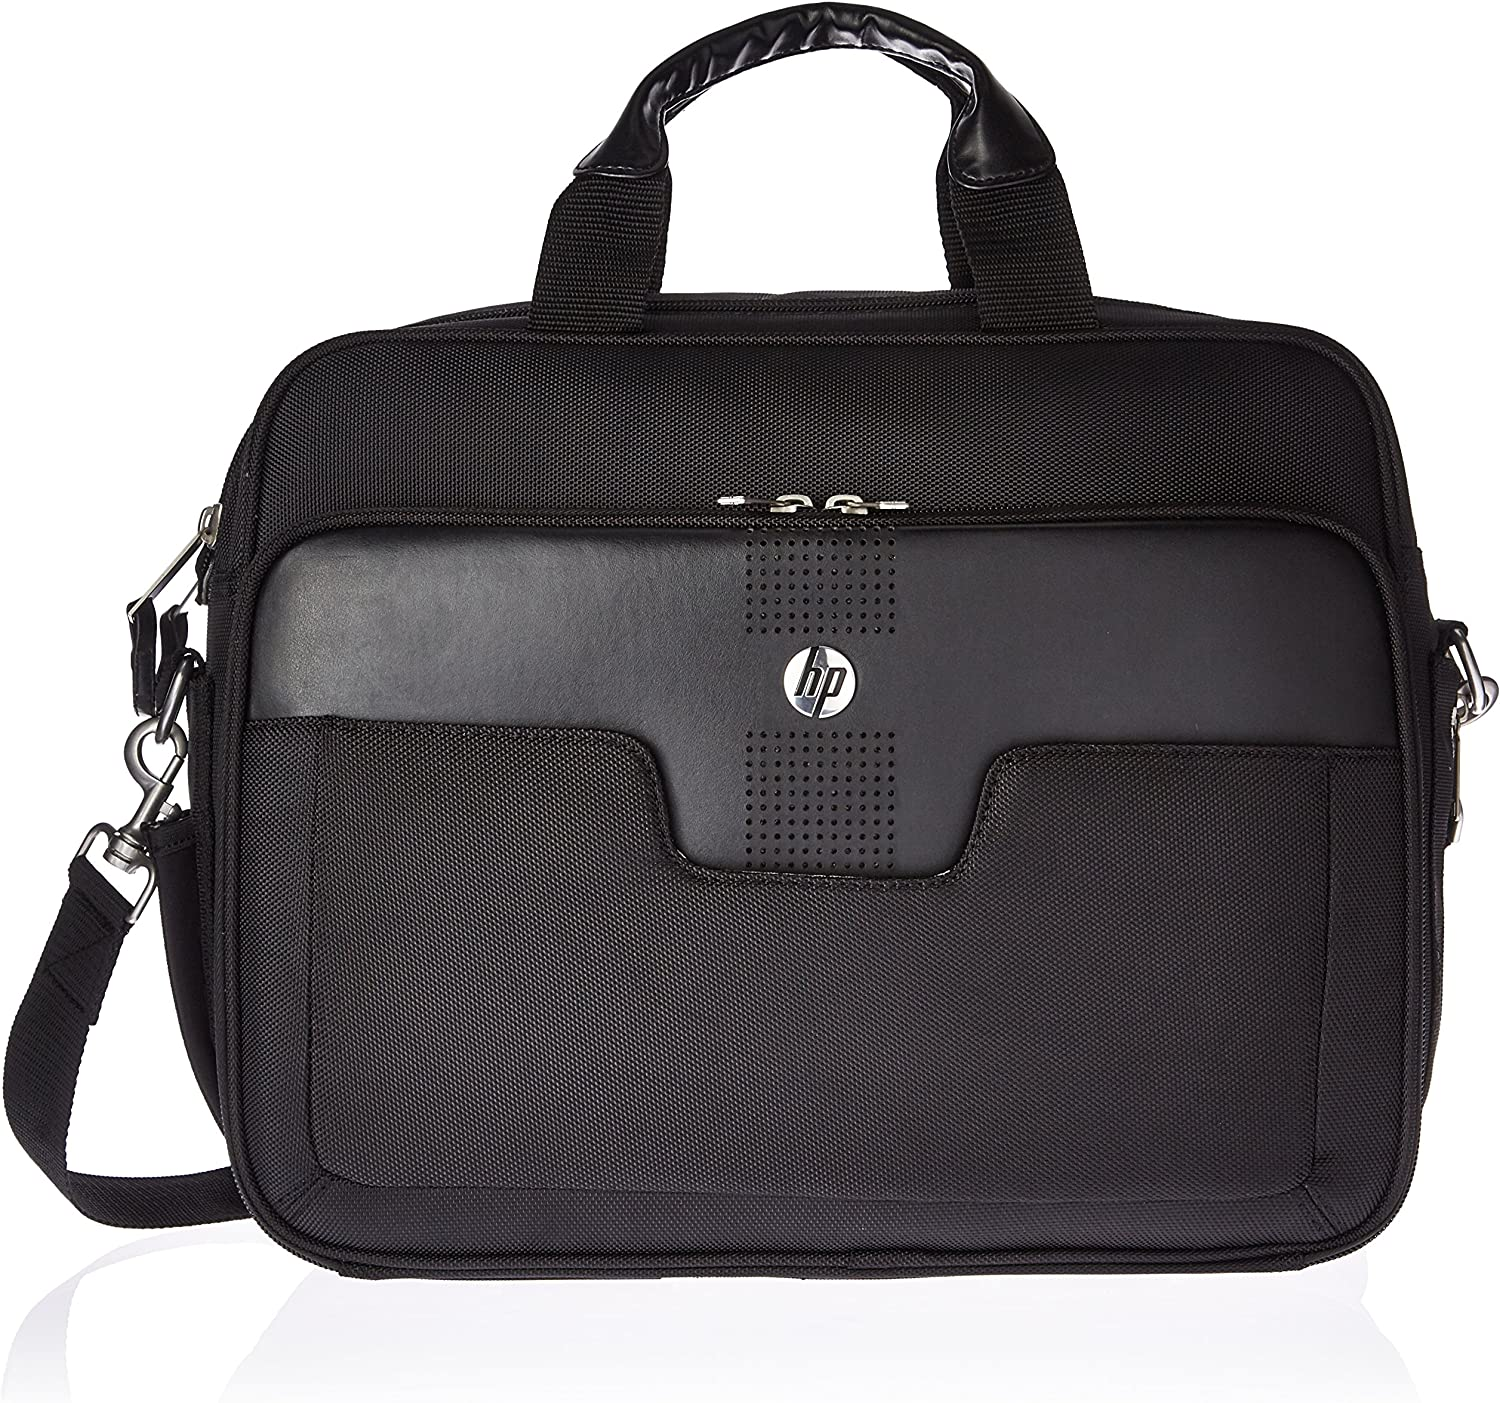 HP Mobile Carrying case (Notebook / printer carrying case) - 15.5""